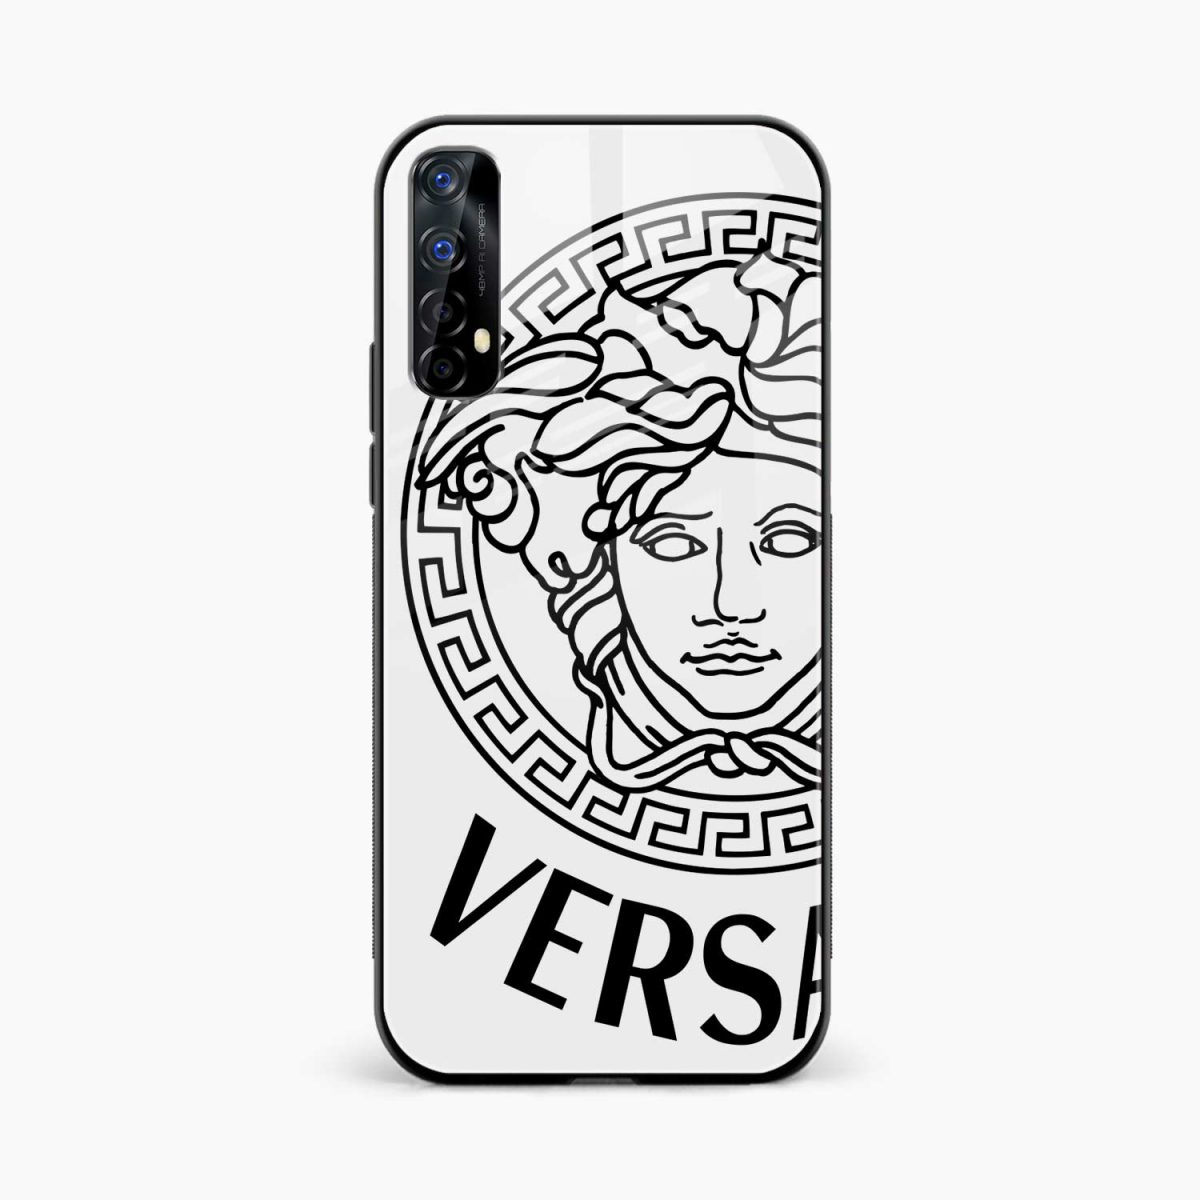 versace black white front view realme 7 back cover